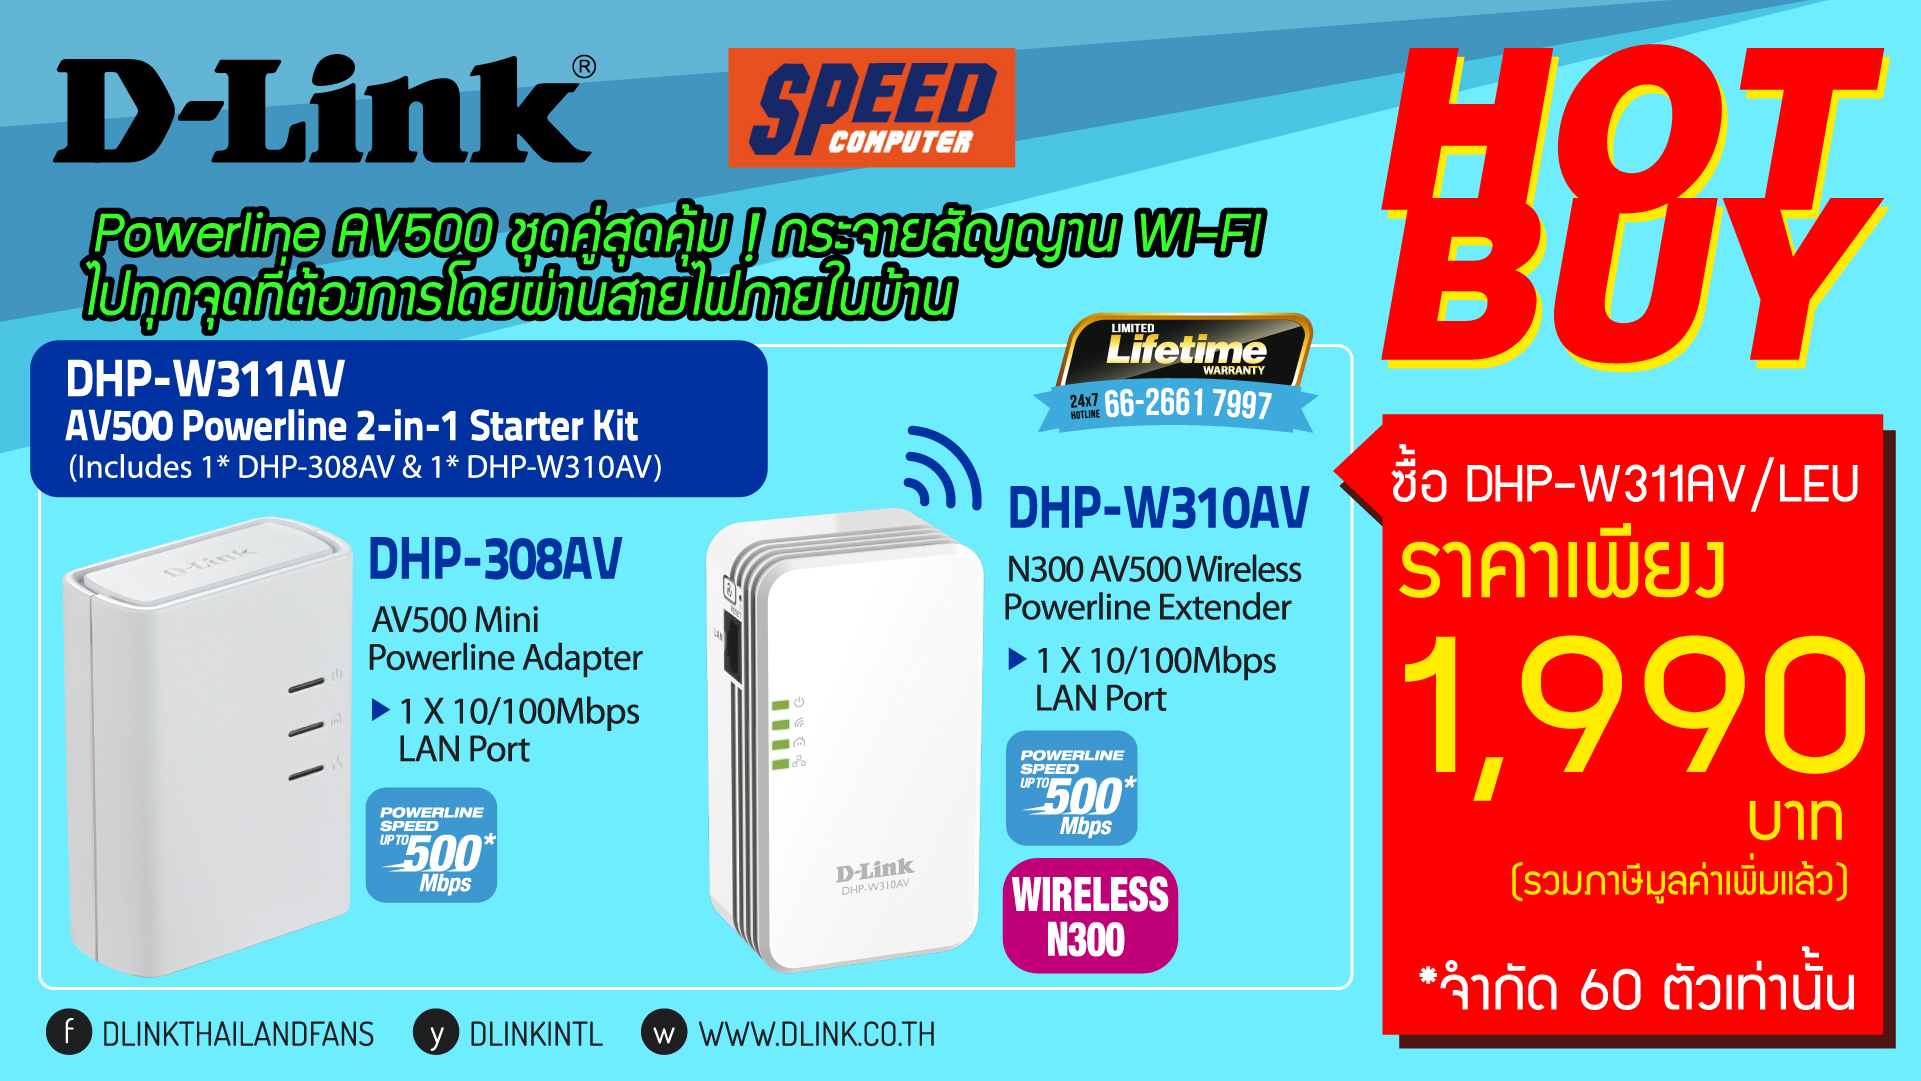 D-Link-Commart-Screen-for-Speed-March-16-03